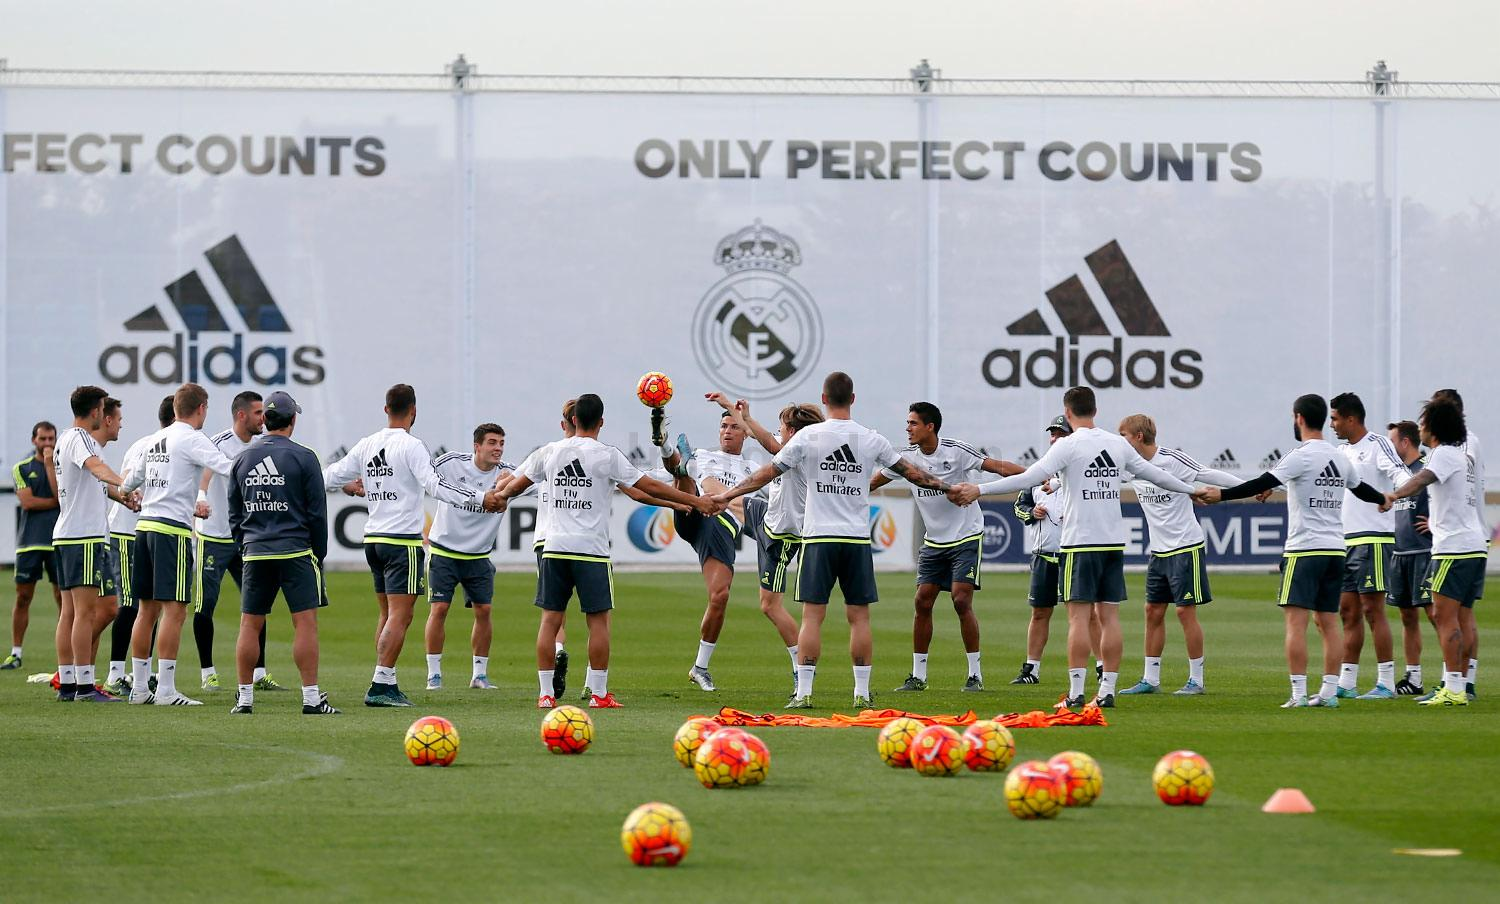 Real Madrid - Entrenamiento del Real Madrid - 23-10-2015